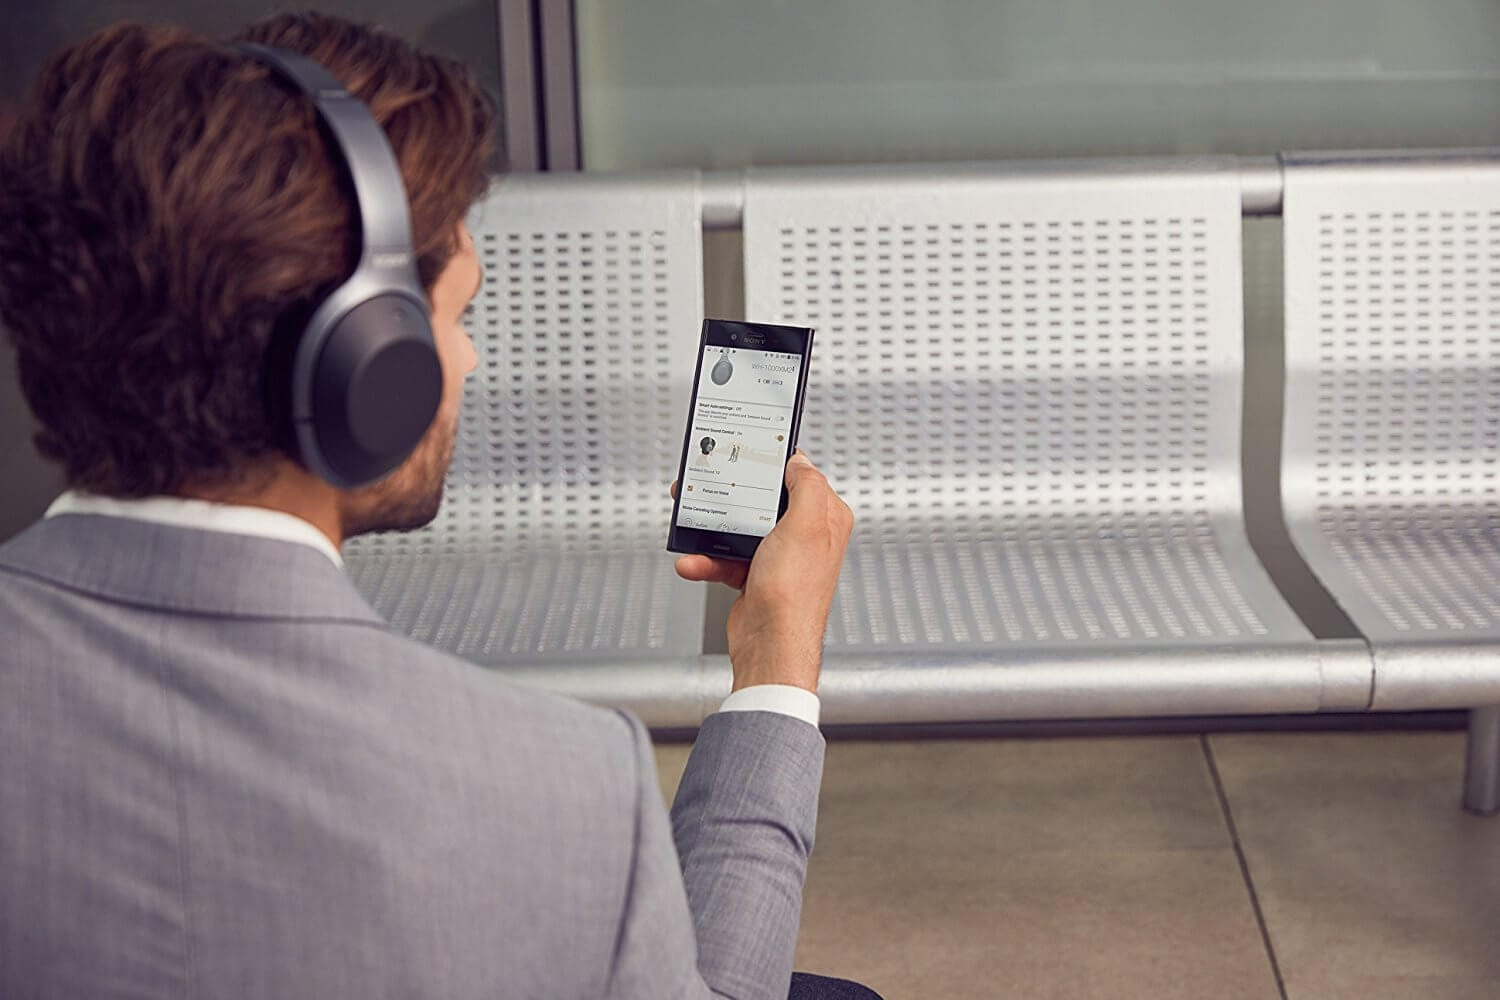 2018 brings with it some of the best wireless headphones in the market. Here are top 10 wireless headphones from this year that are worth every penny you spend.